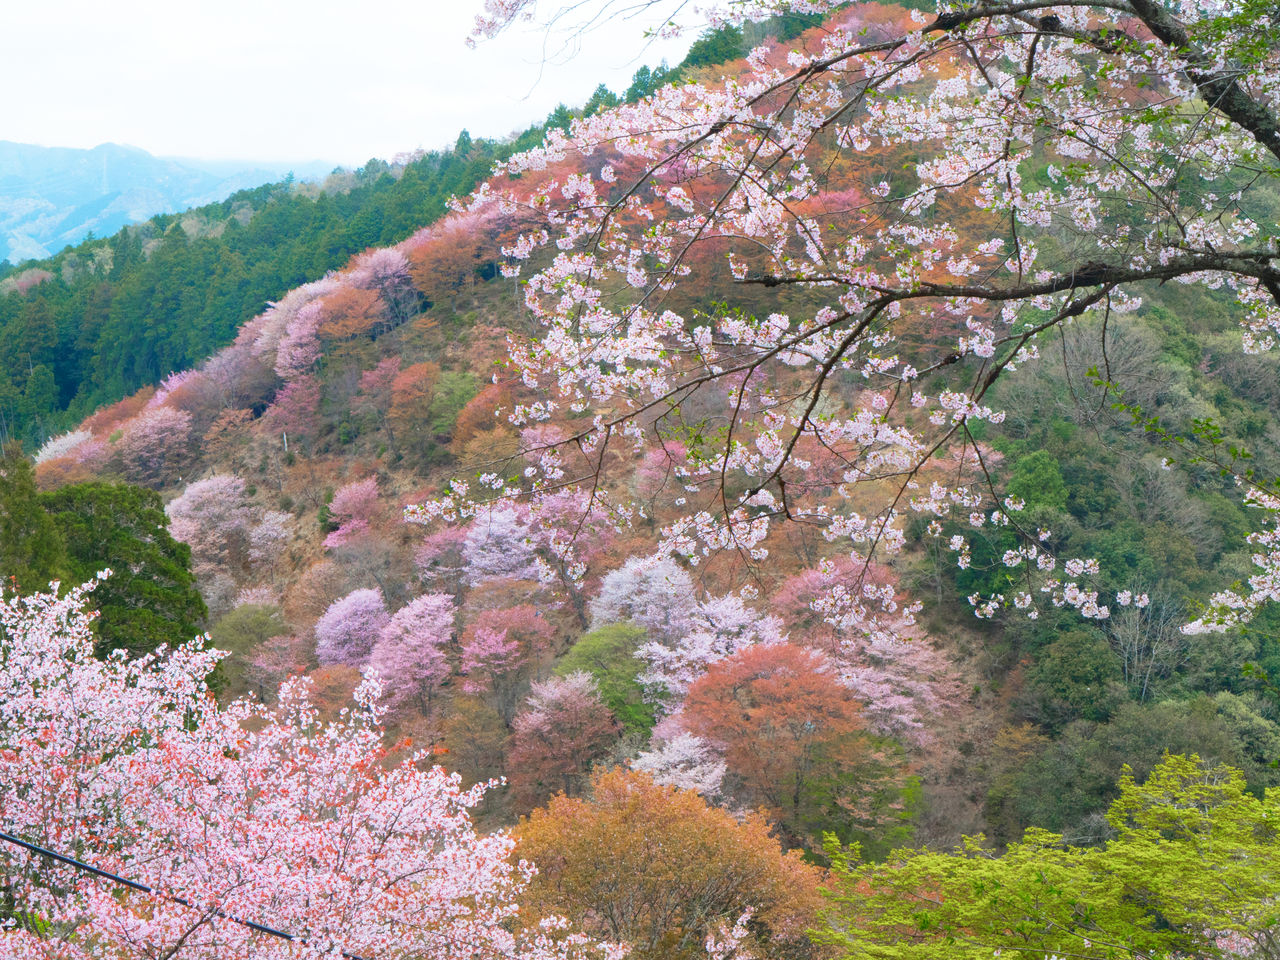 A view of the shimo-senbon cherry blossoms.